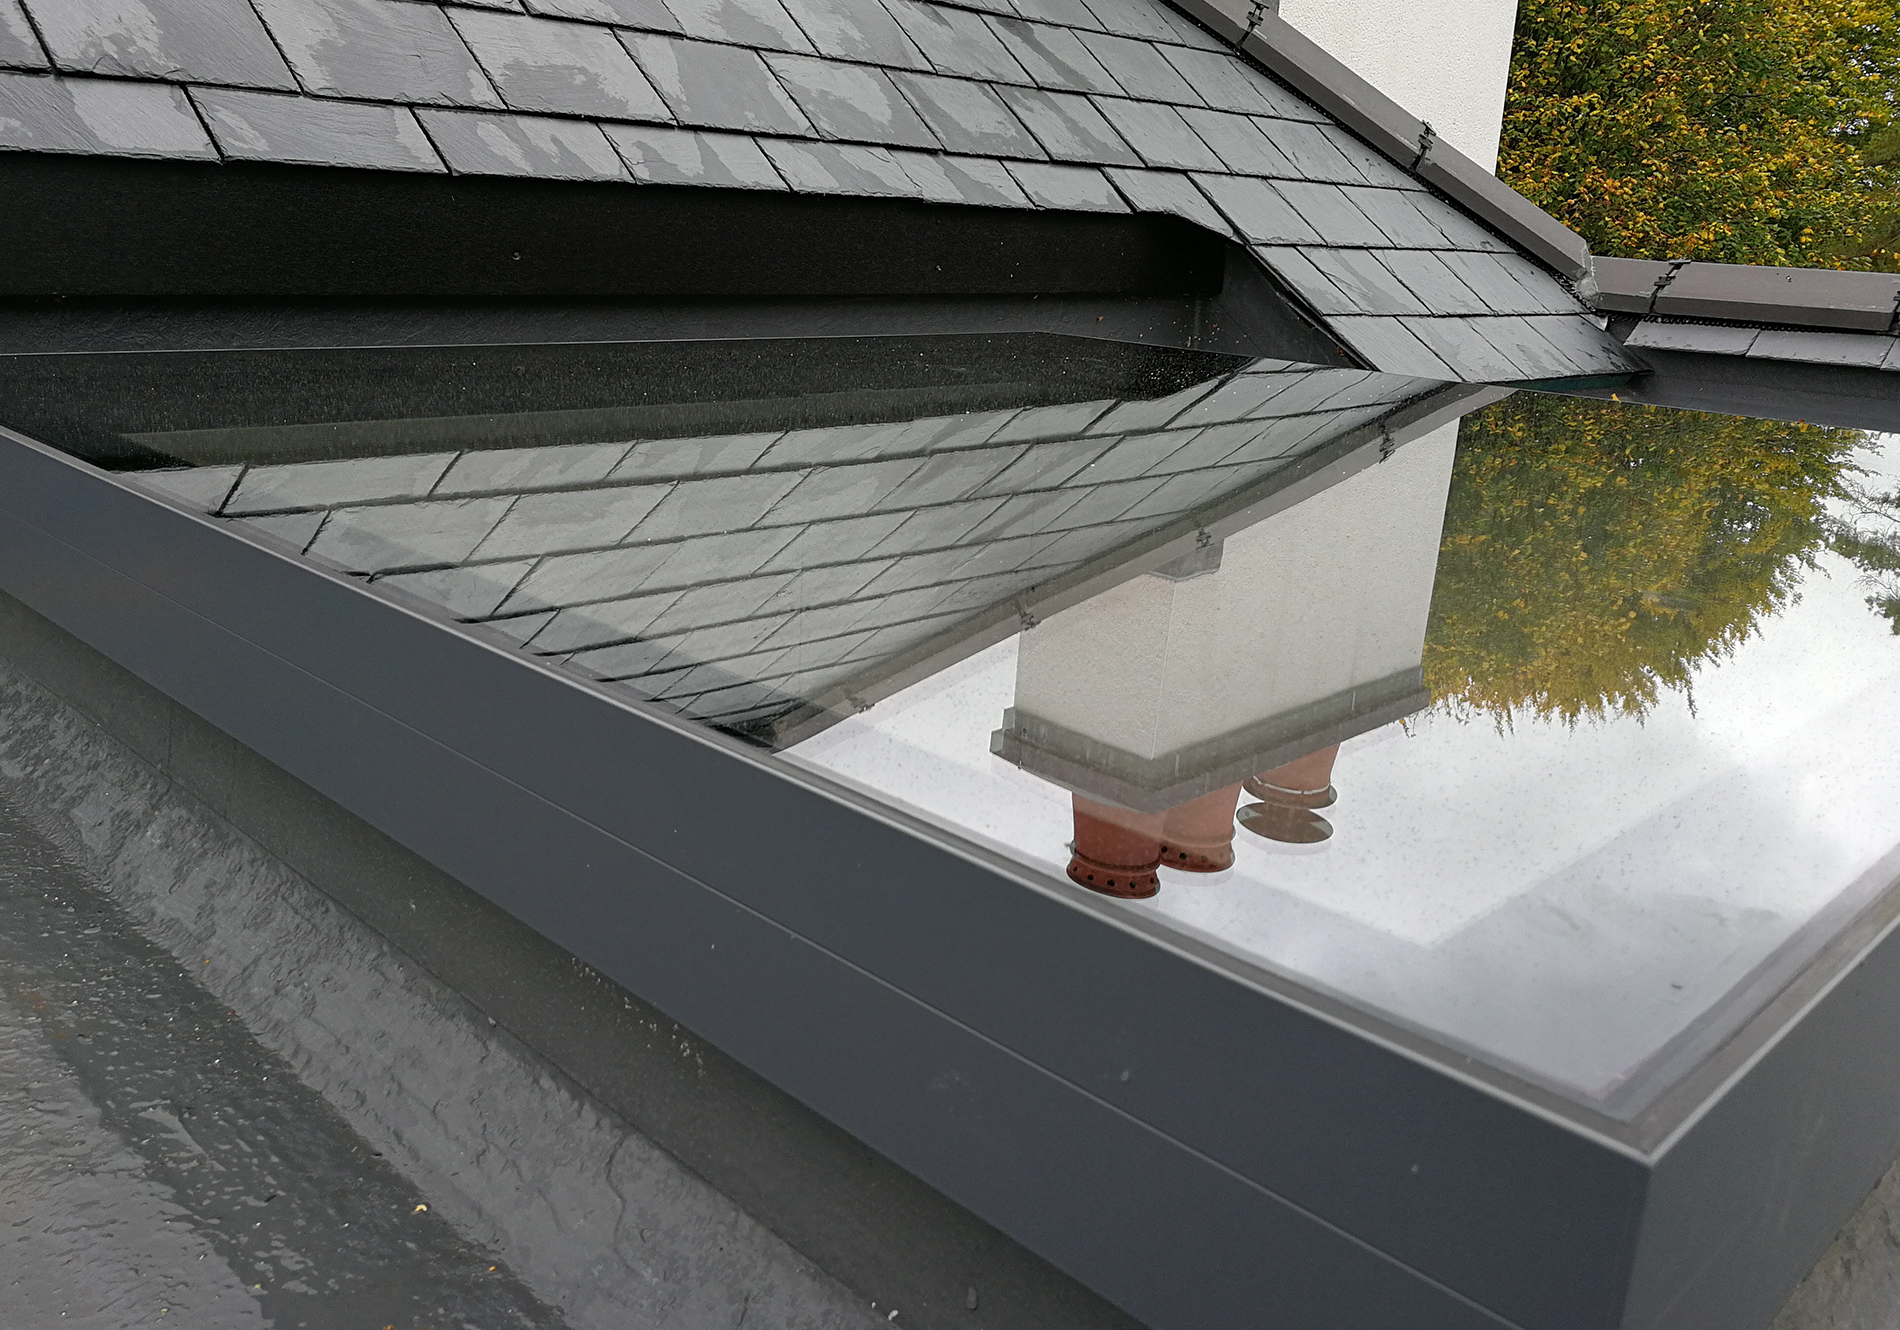 leatherhead exact flat roof light 04